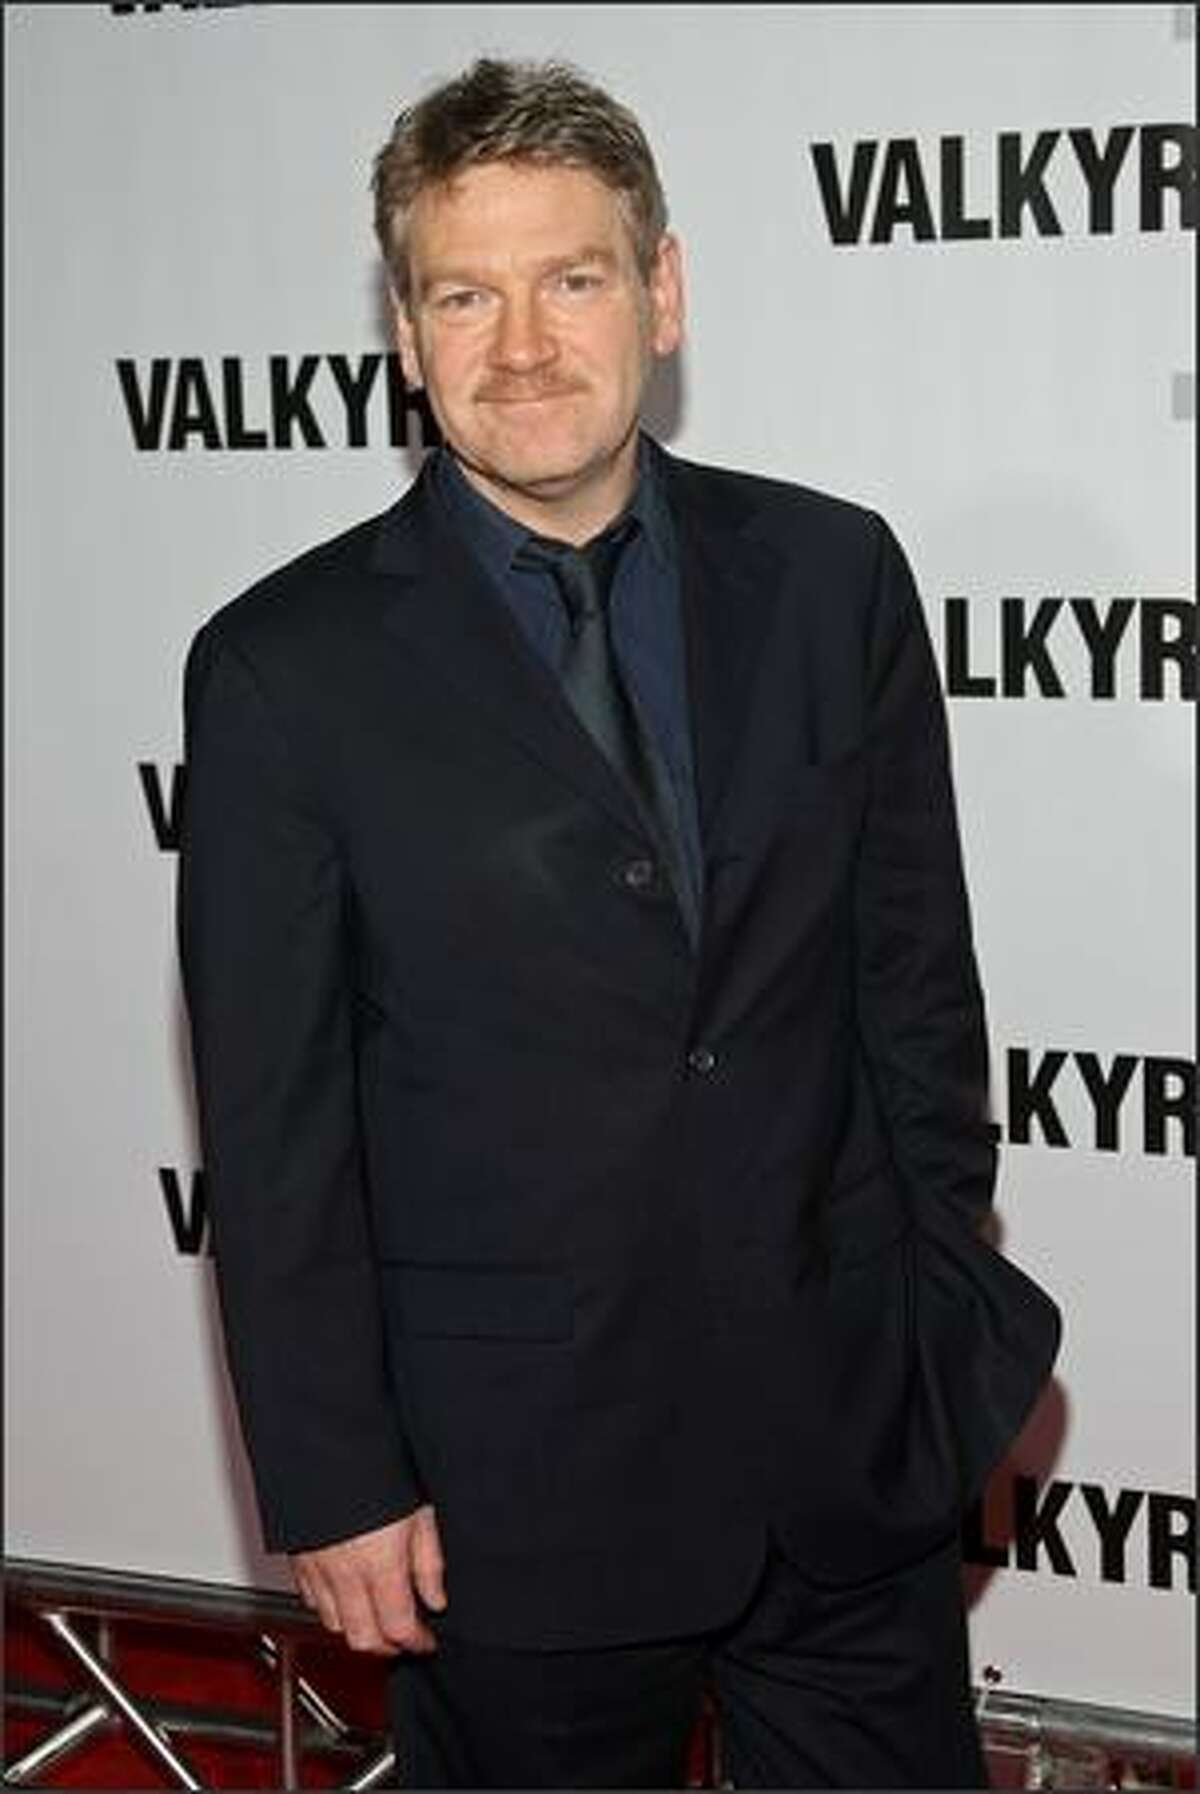 """Actor Kenneth Branagh attends the premiere of """"Valkyrie"""" at Rose Hall inside the Time Warner Center on Monday in New York City."""